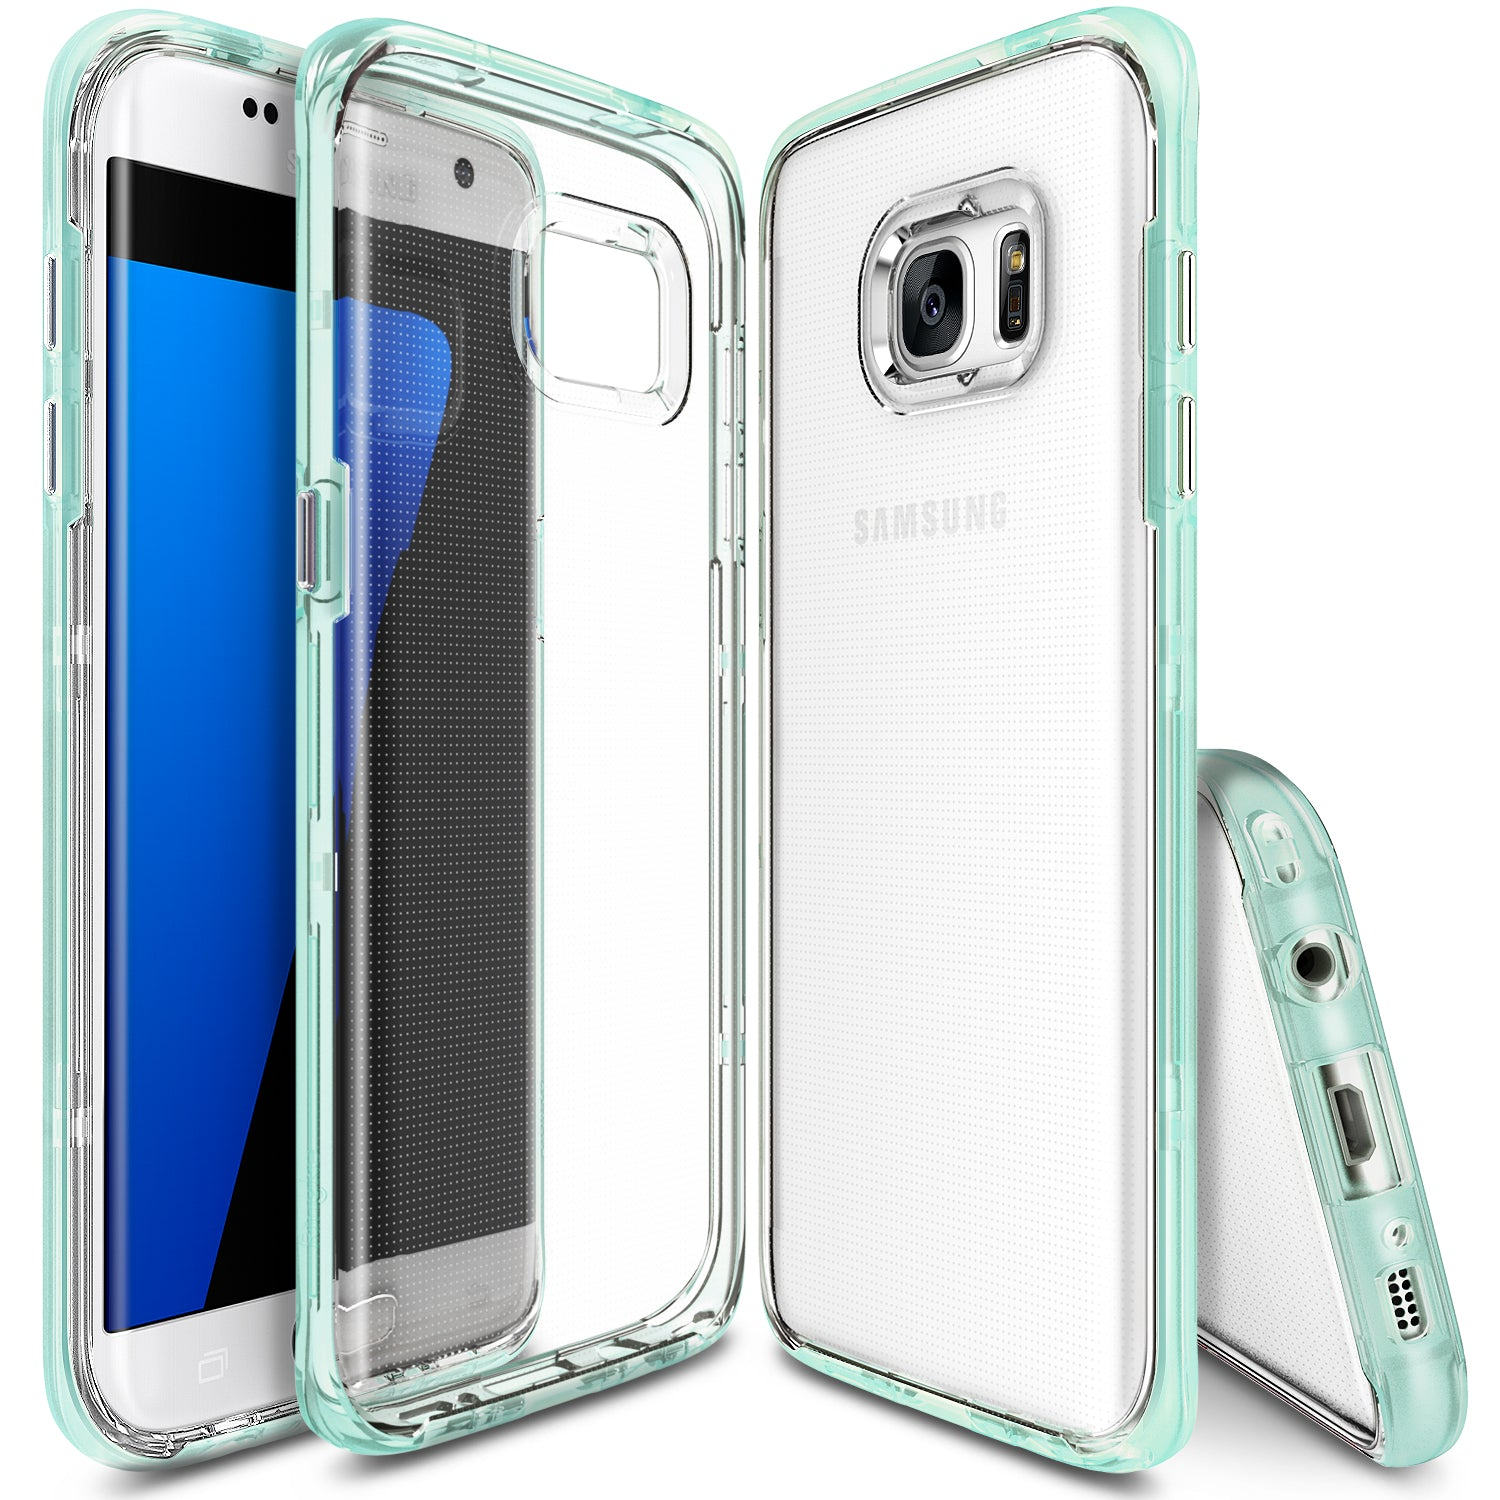 ringke frame clear back advanced bumper protection cover case for galaxy s7 edge frost mint